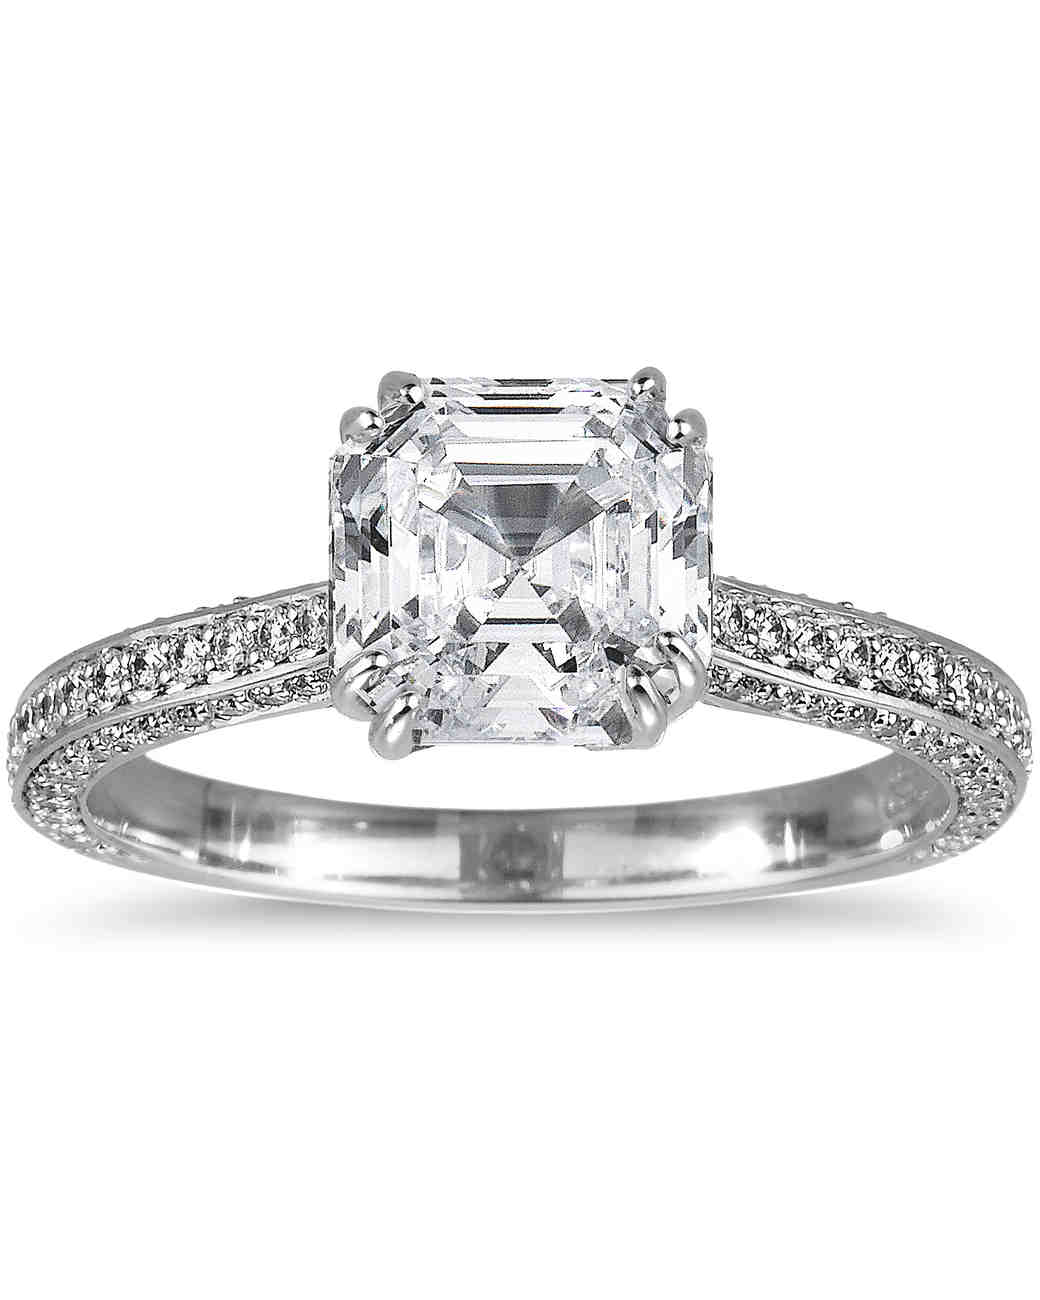 Asschercut Diamond Engagement Rings  Martha Stewart Weddings. Ultimate Engagement Rings. Minimalist Wedding Rings. Blown Glass Wedding Rings. School Dance Rings. Ary Rings. Inlaid Wood Wedding Rings. Wide Wedding Rings. Tiny Emerald Cut Diamond Wedding Rings